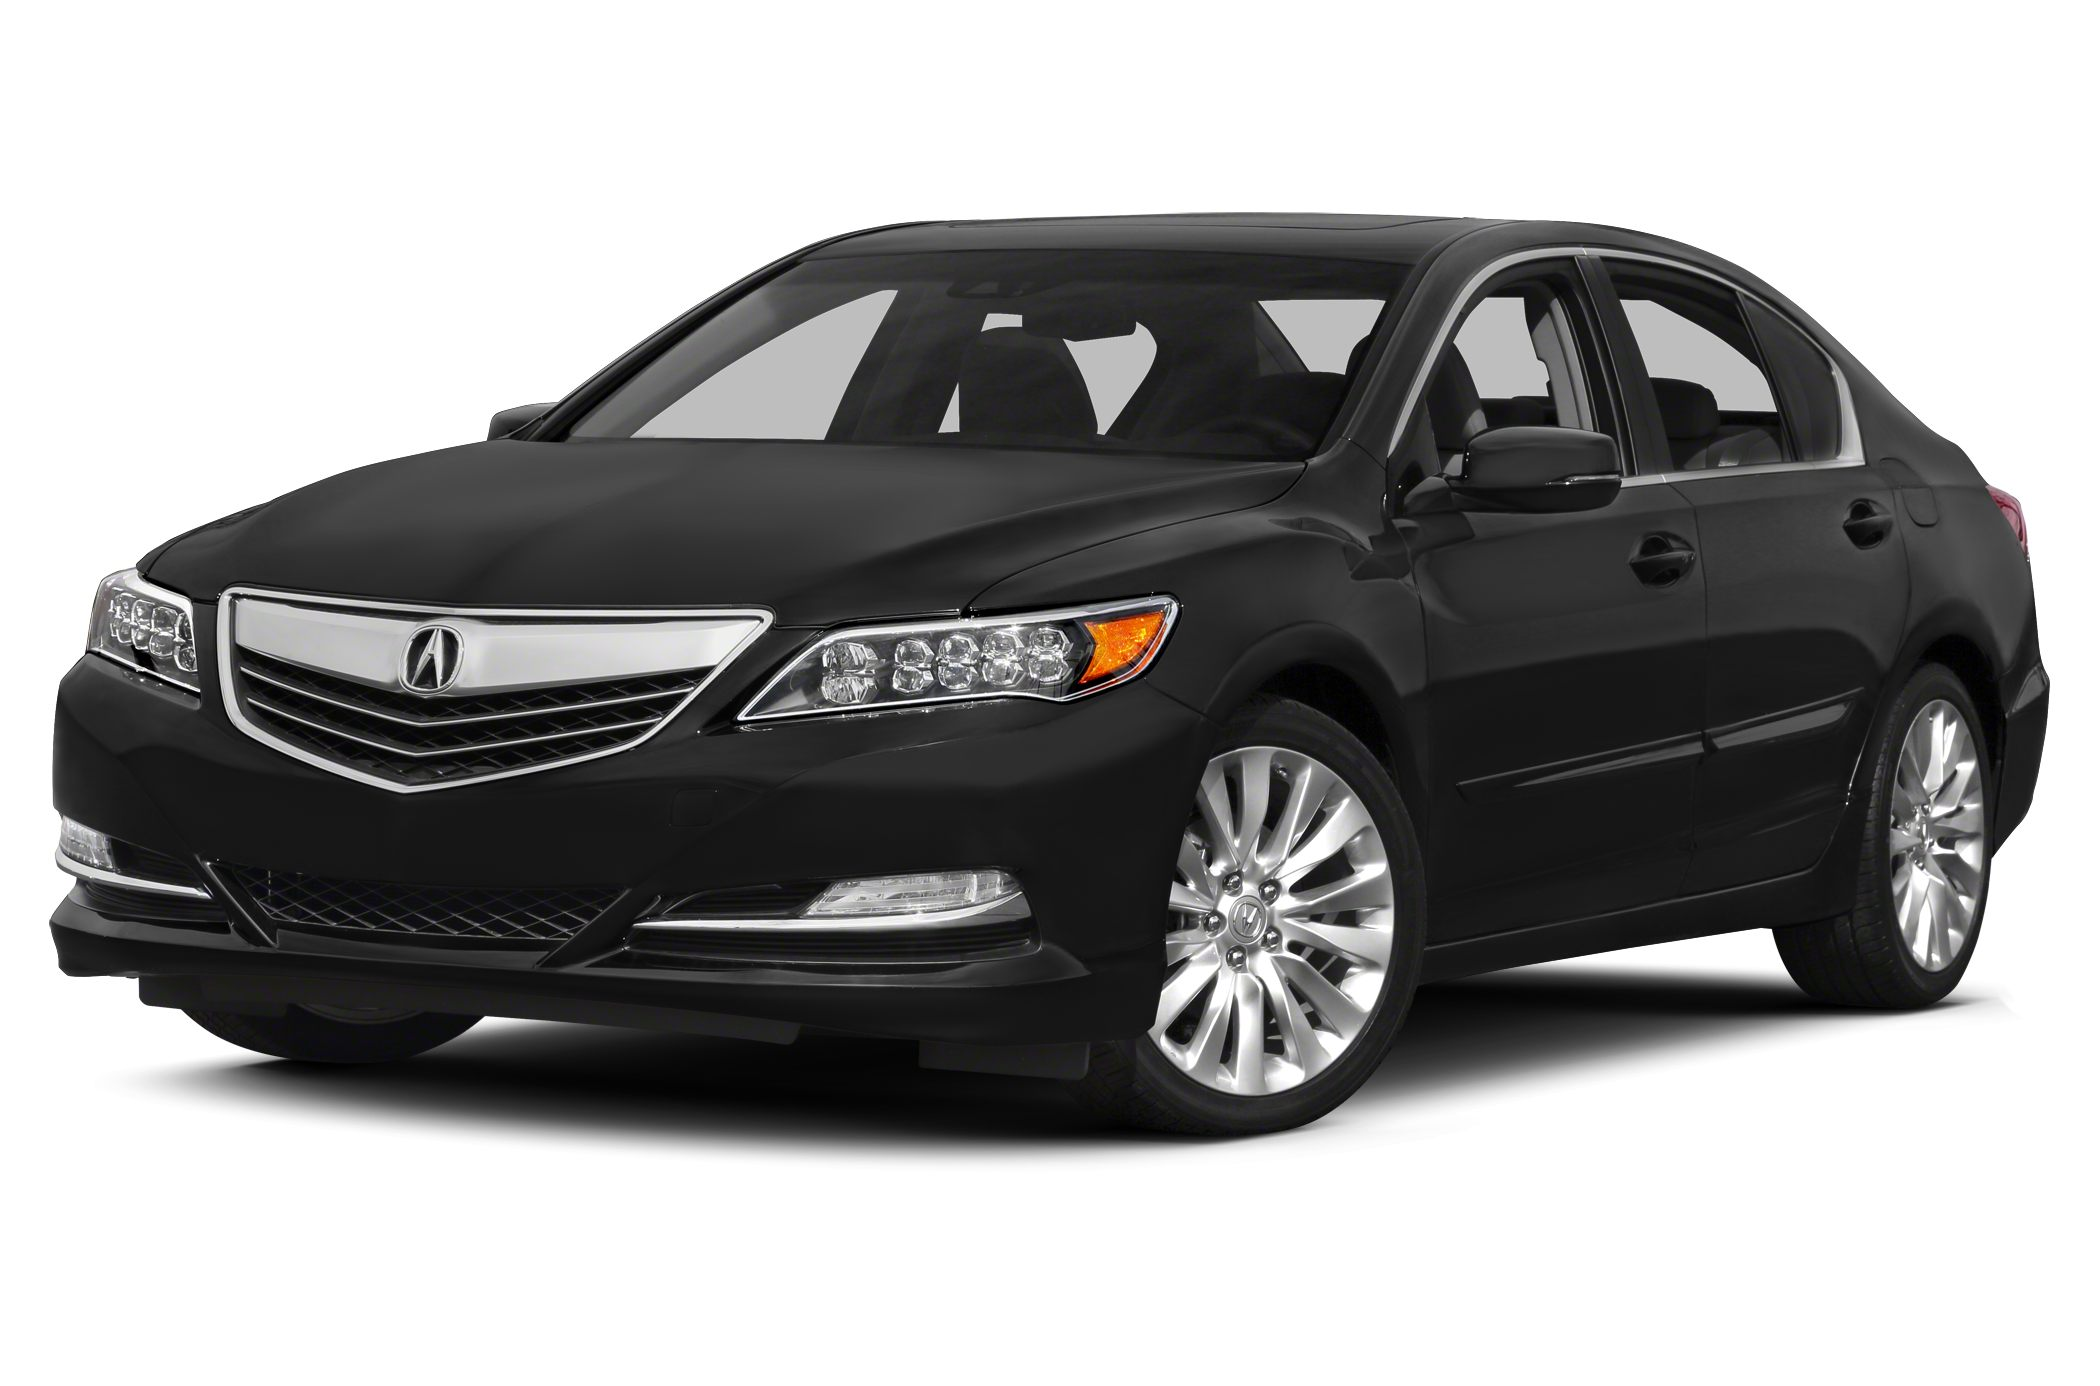 2014 Acura RLX Technology Certified Clean Carfax Power Sunroof - Navigation - Back Up Camera - Bl